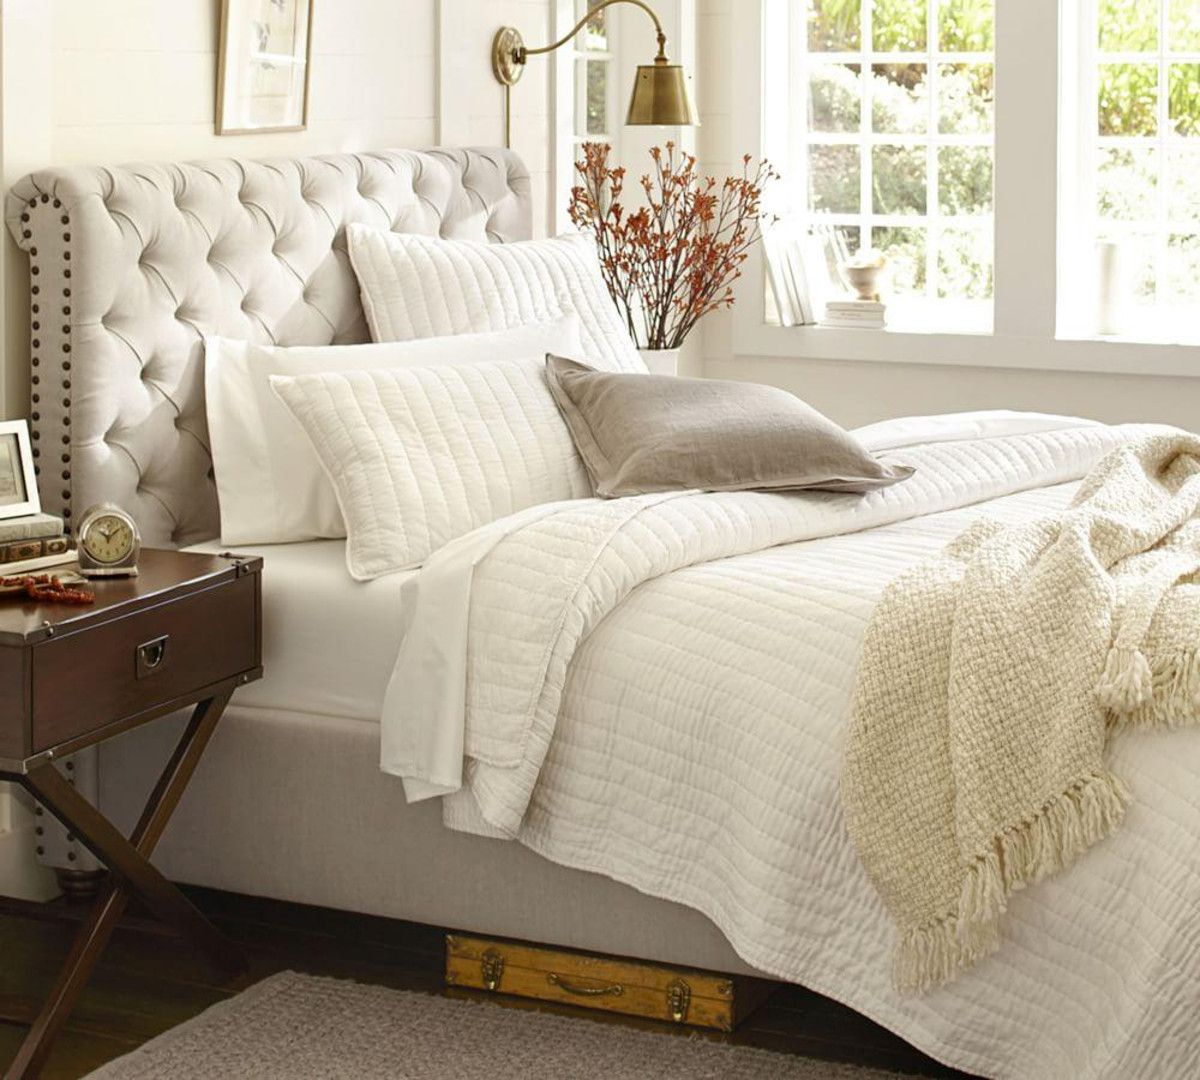 Chesterfield Upholstered Bed & Headboard Queen